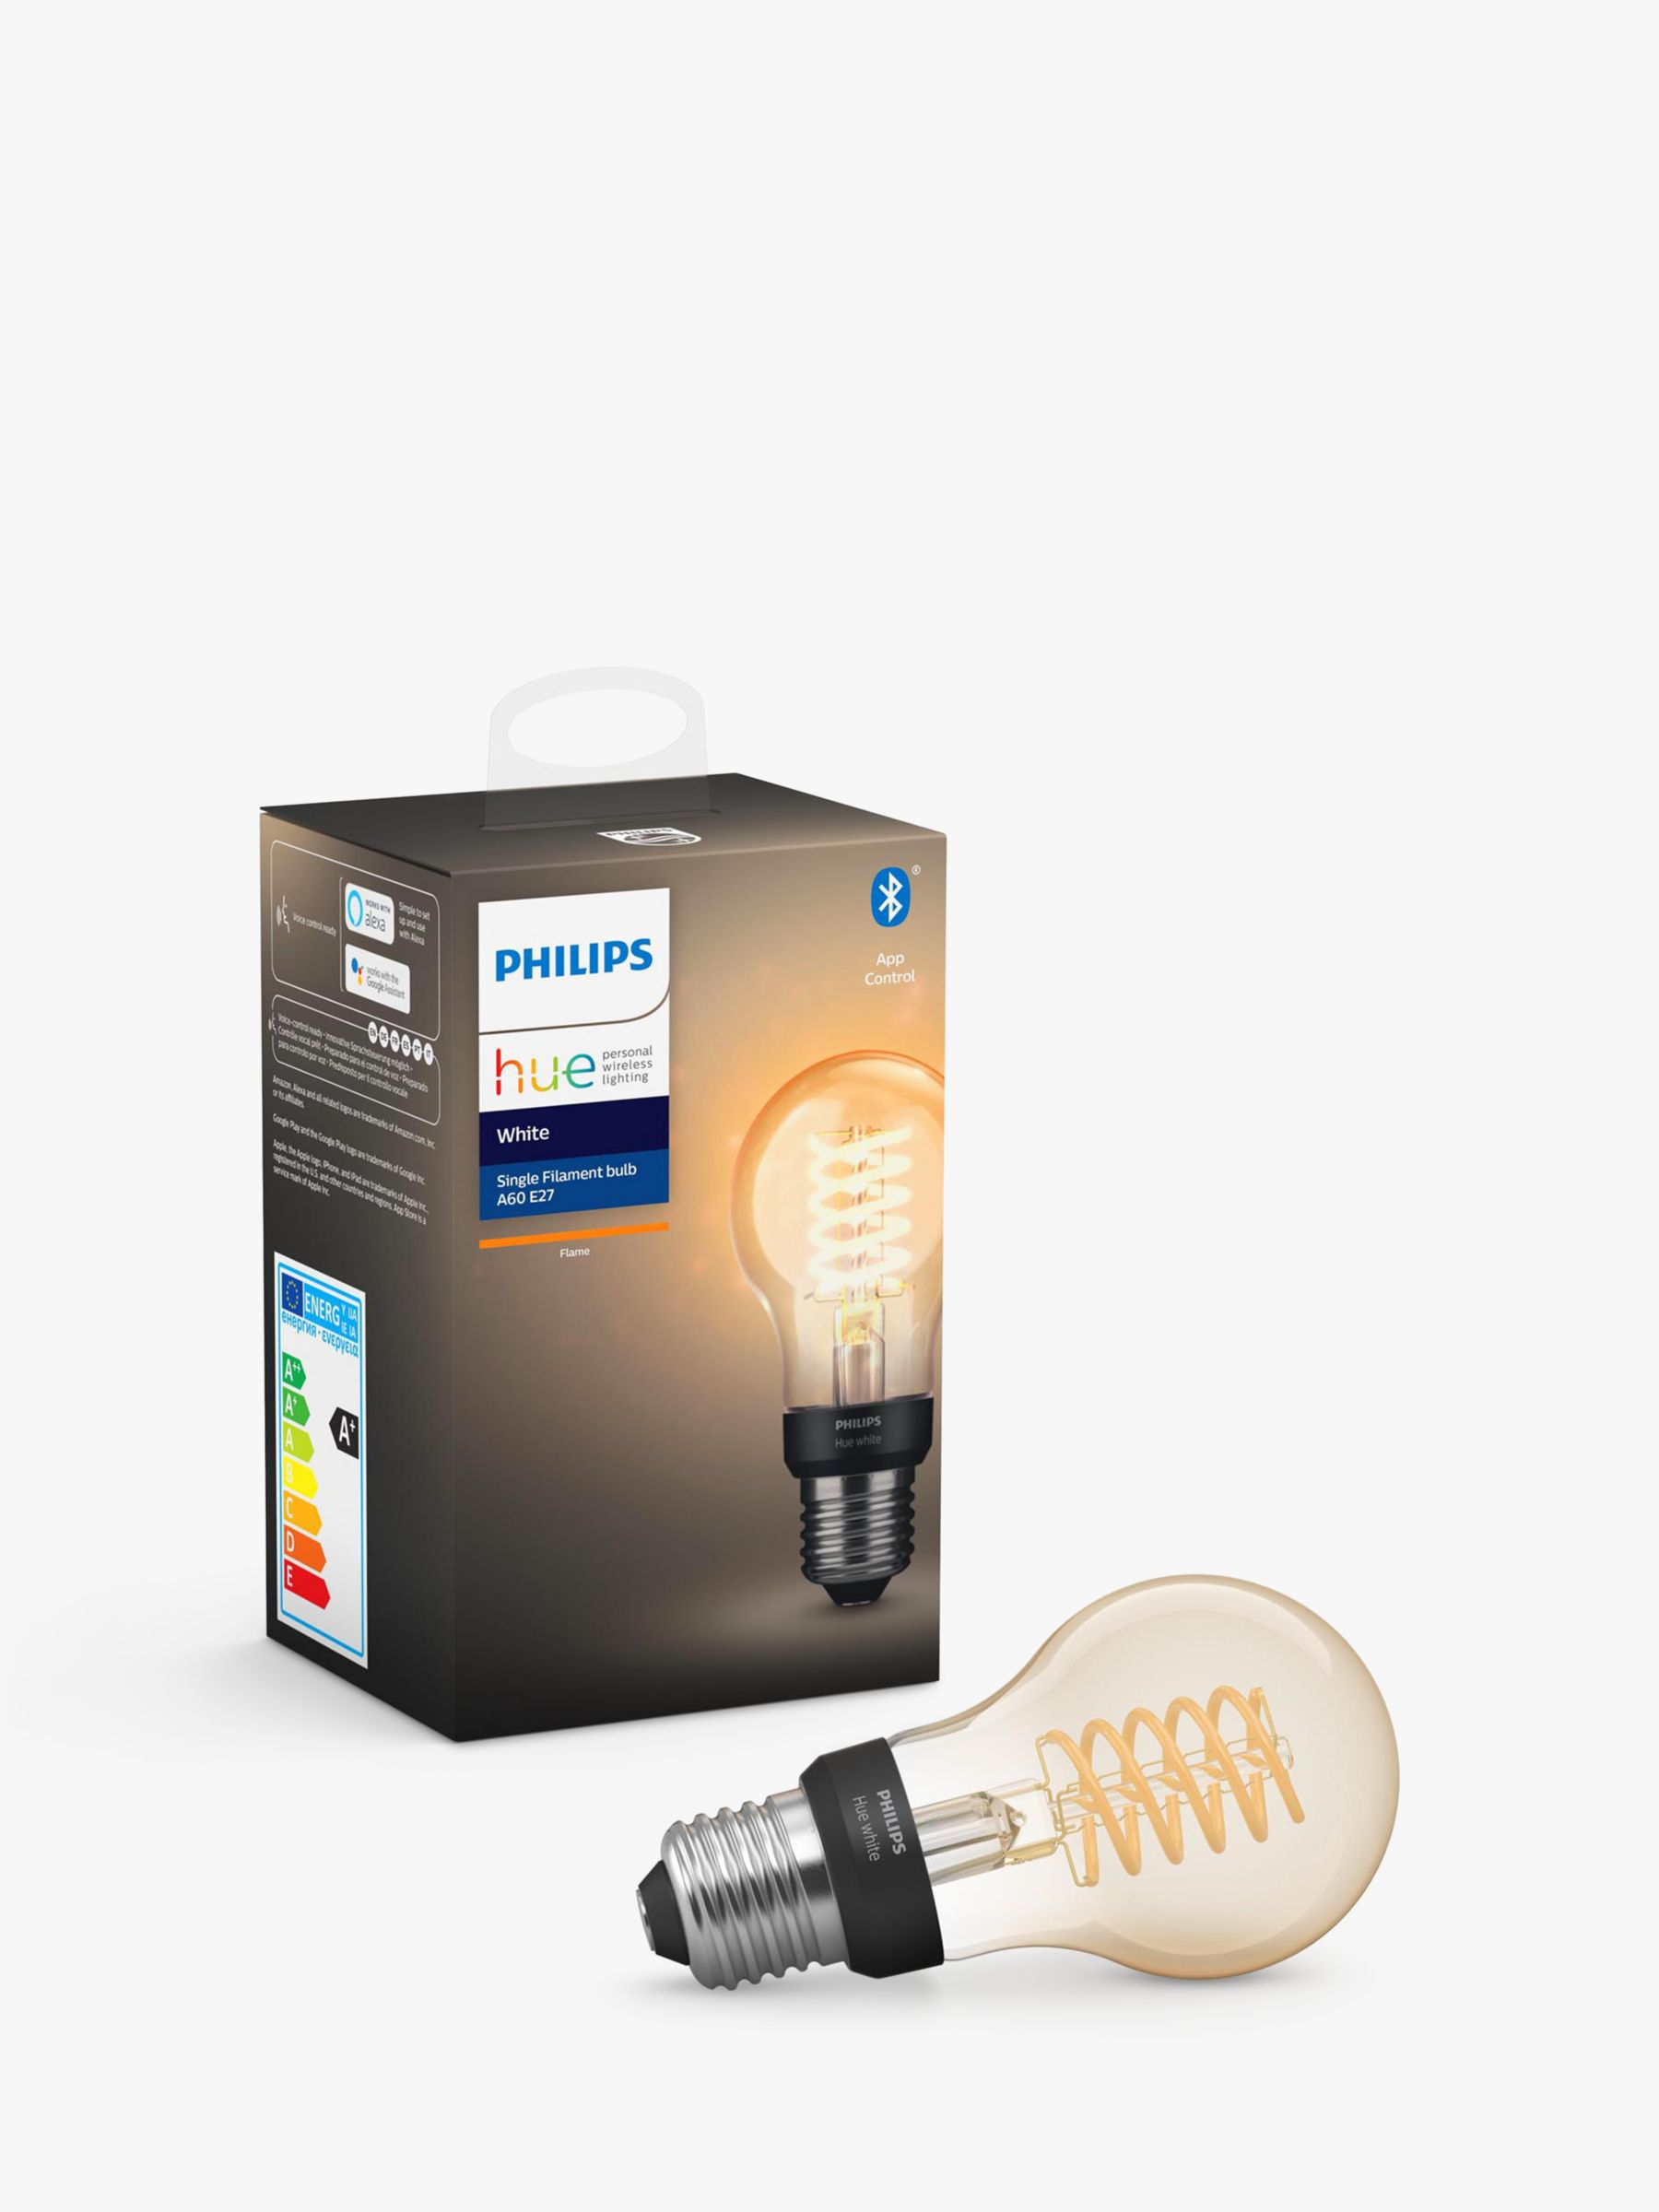 Philips Philips Hue White Ambiance Wireless Lighting 7W ES LED Dimmable Classic Filament Bulb, A60 E27